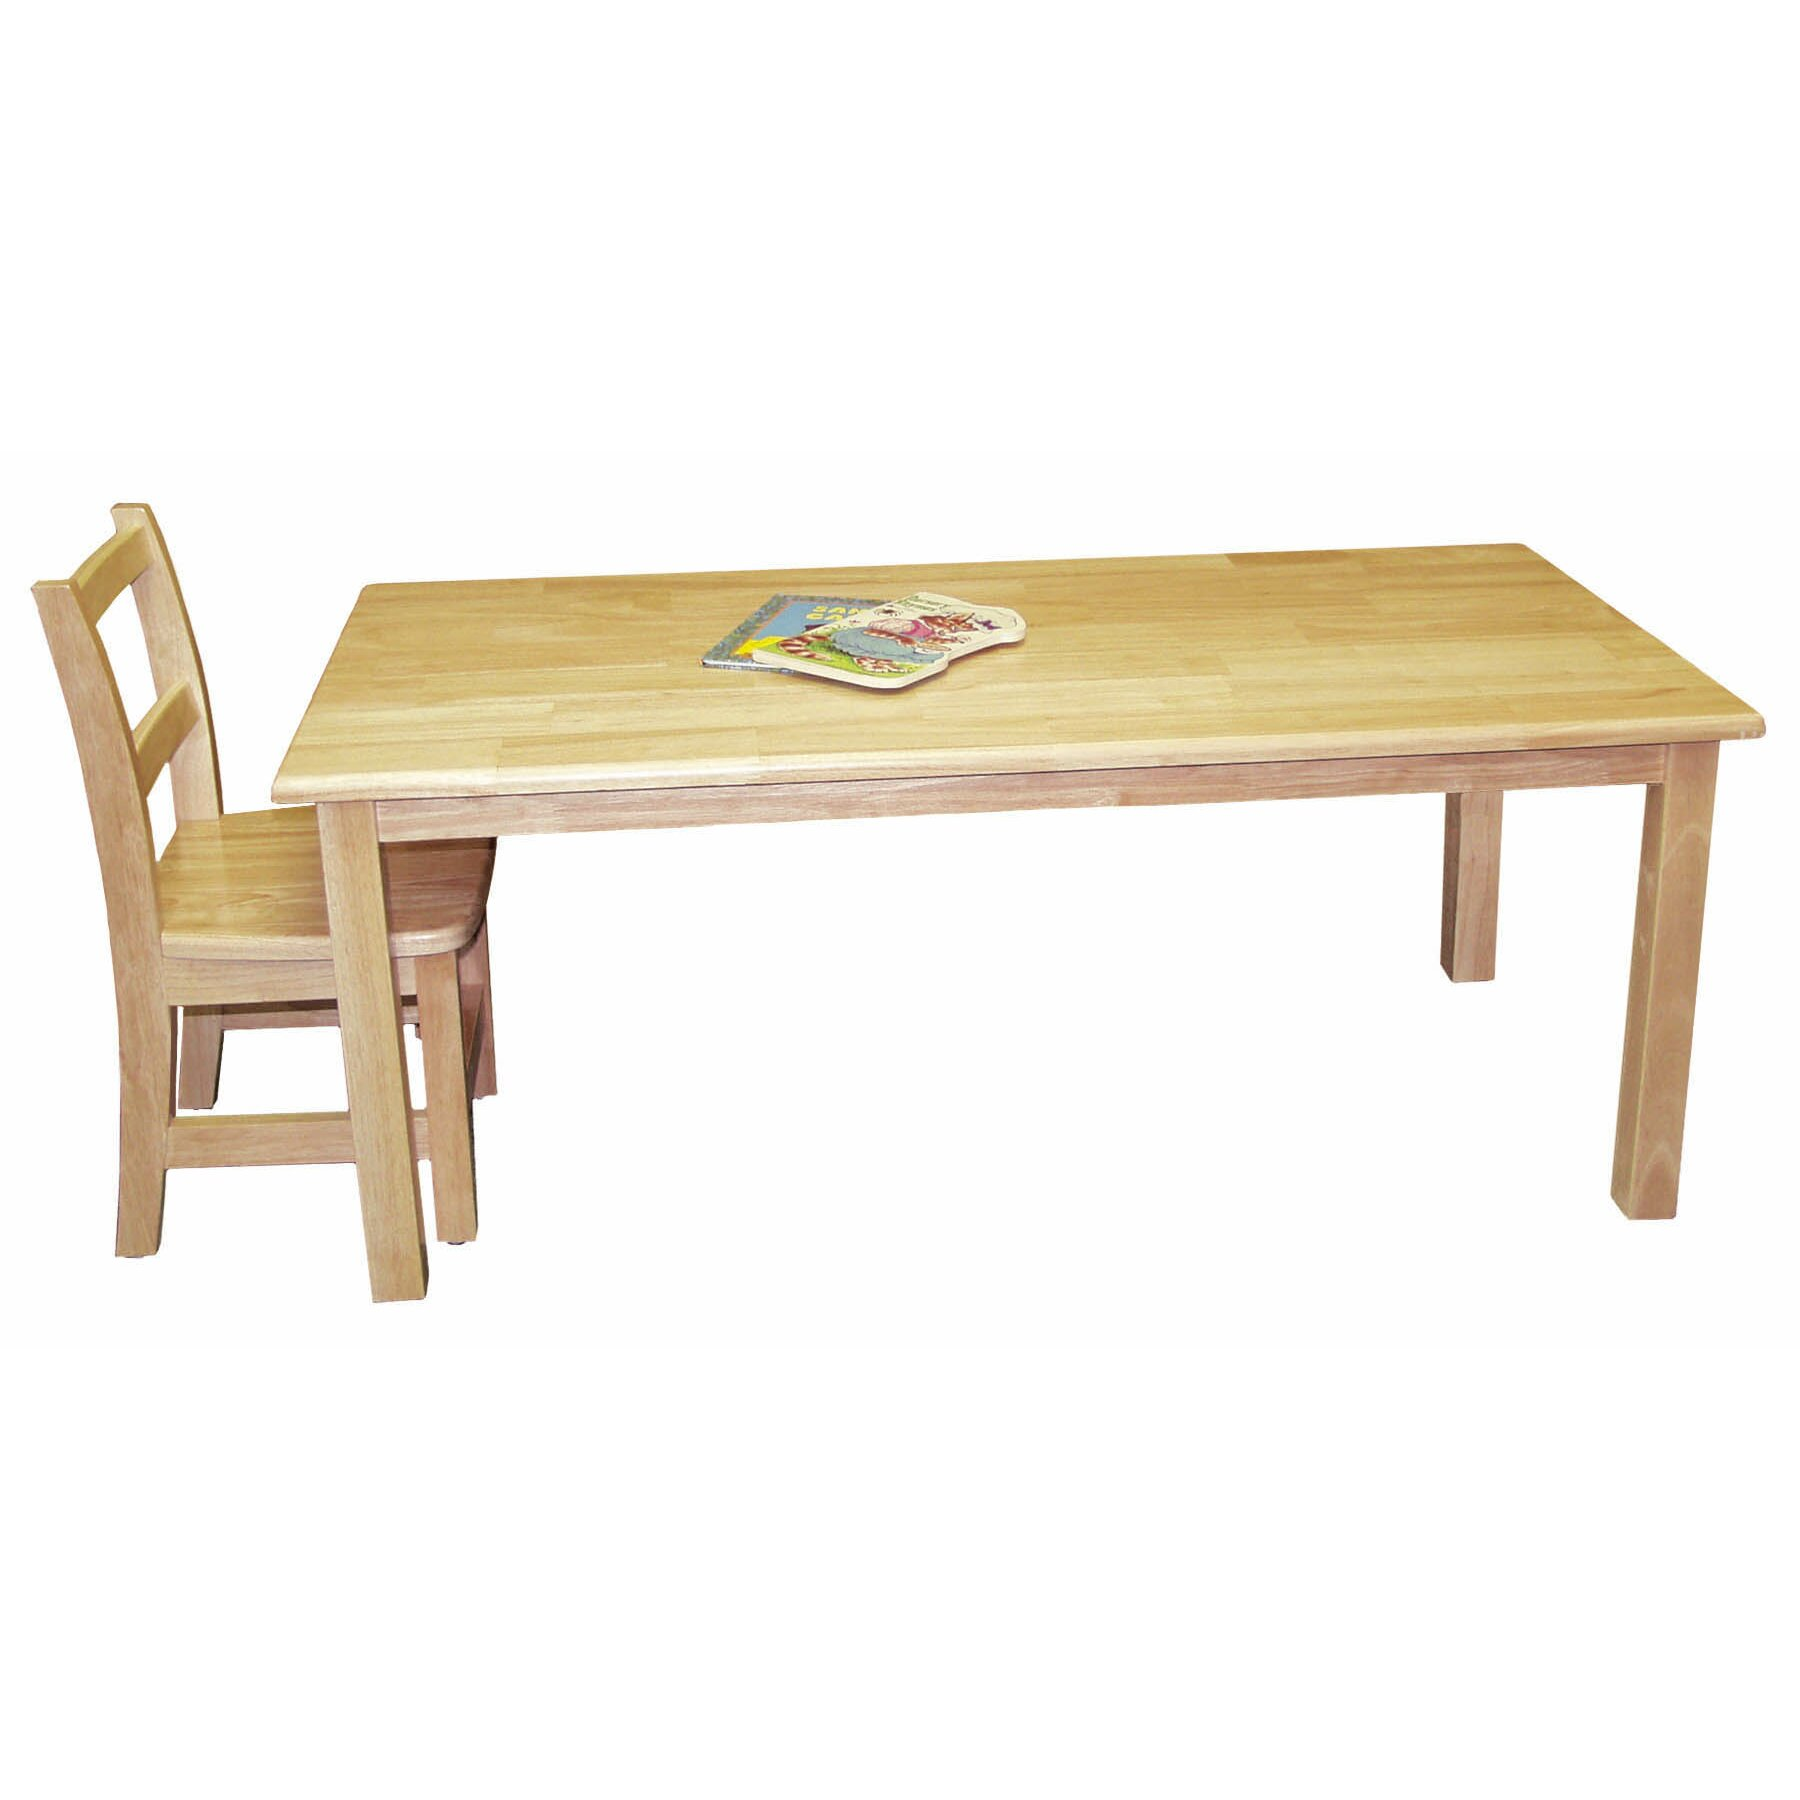 Ecr4kids rectangular activity table reviews wayfair for Table x reviews